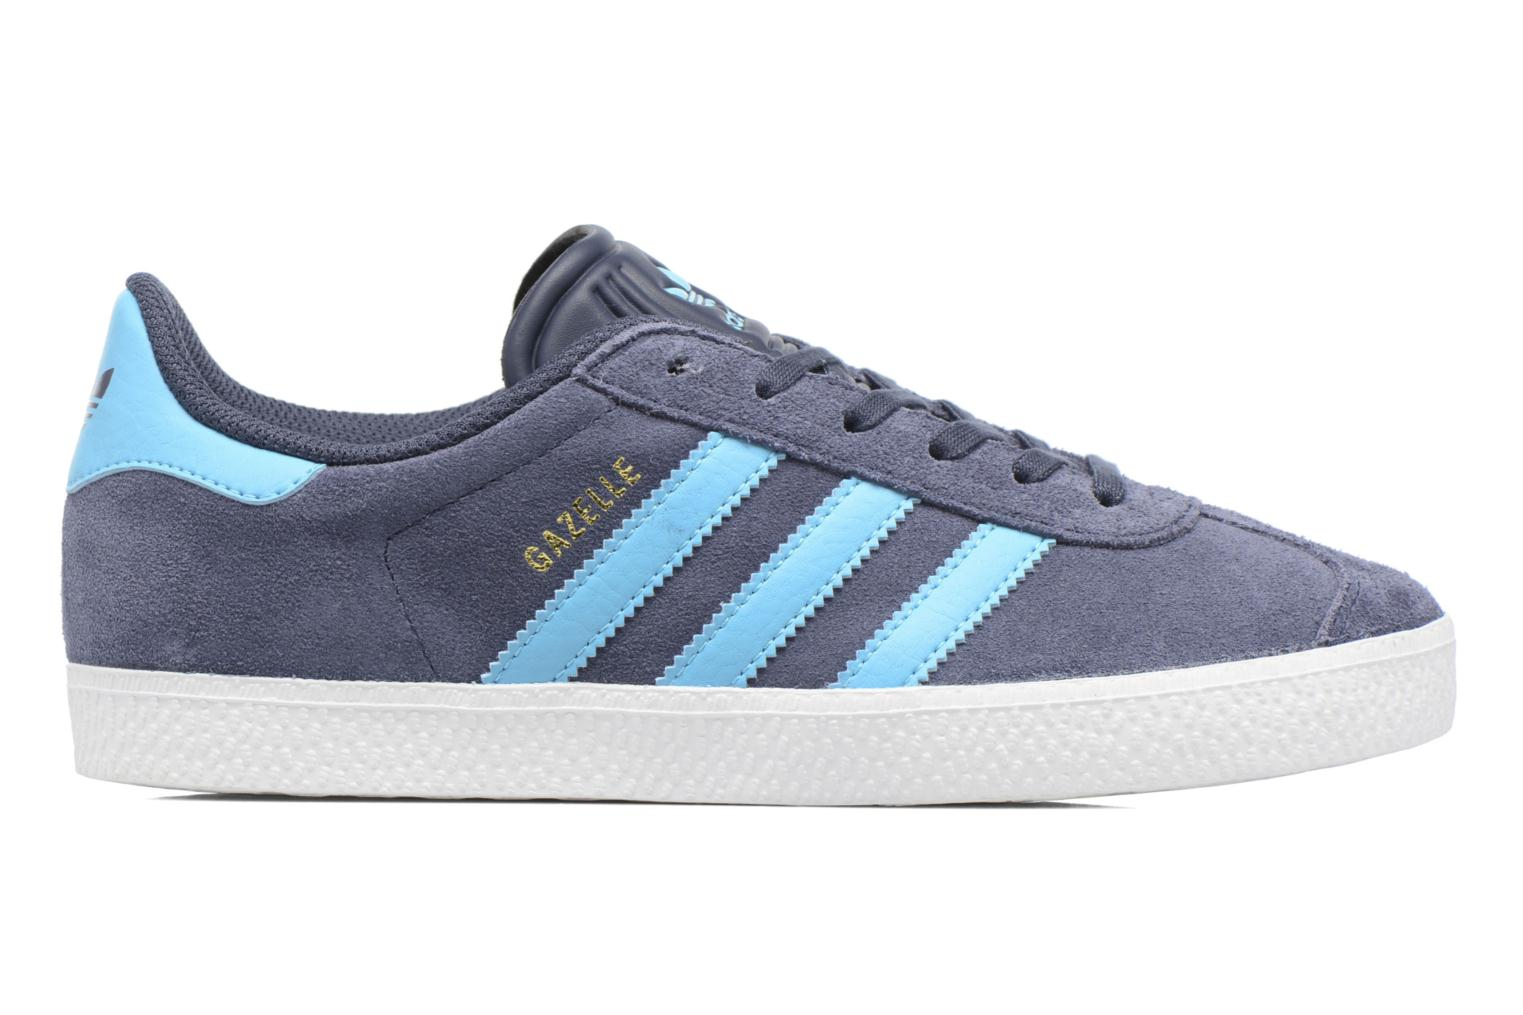 Baskets Adidas Originals Gazelle J Gris vue derrière